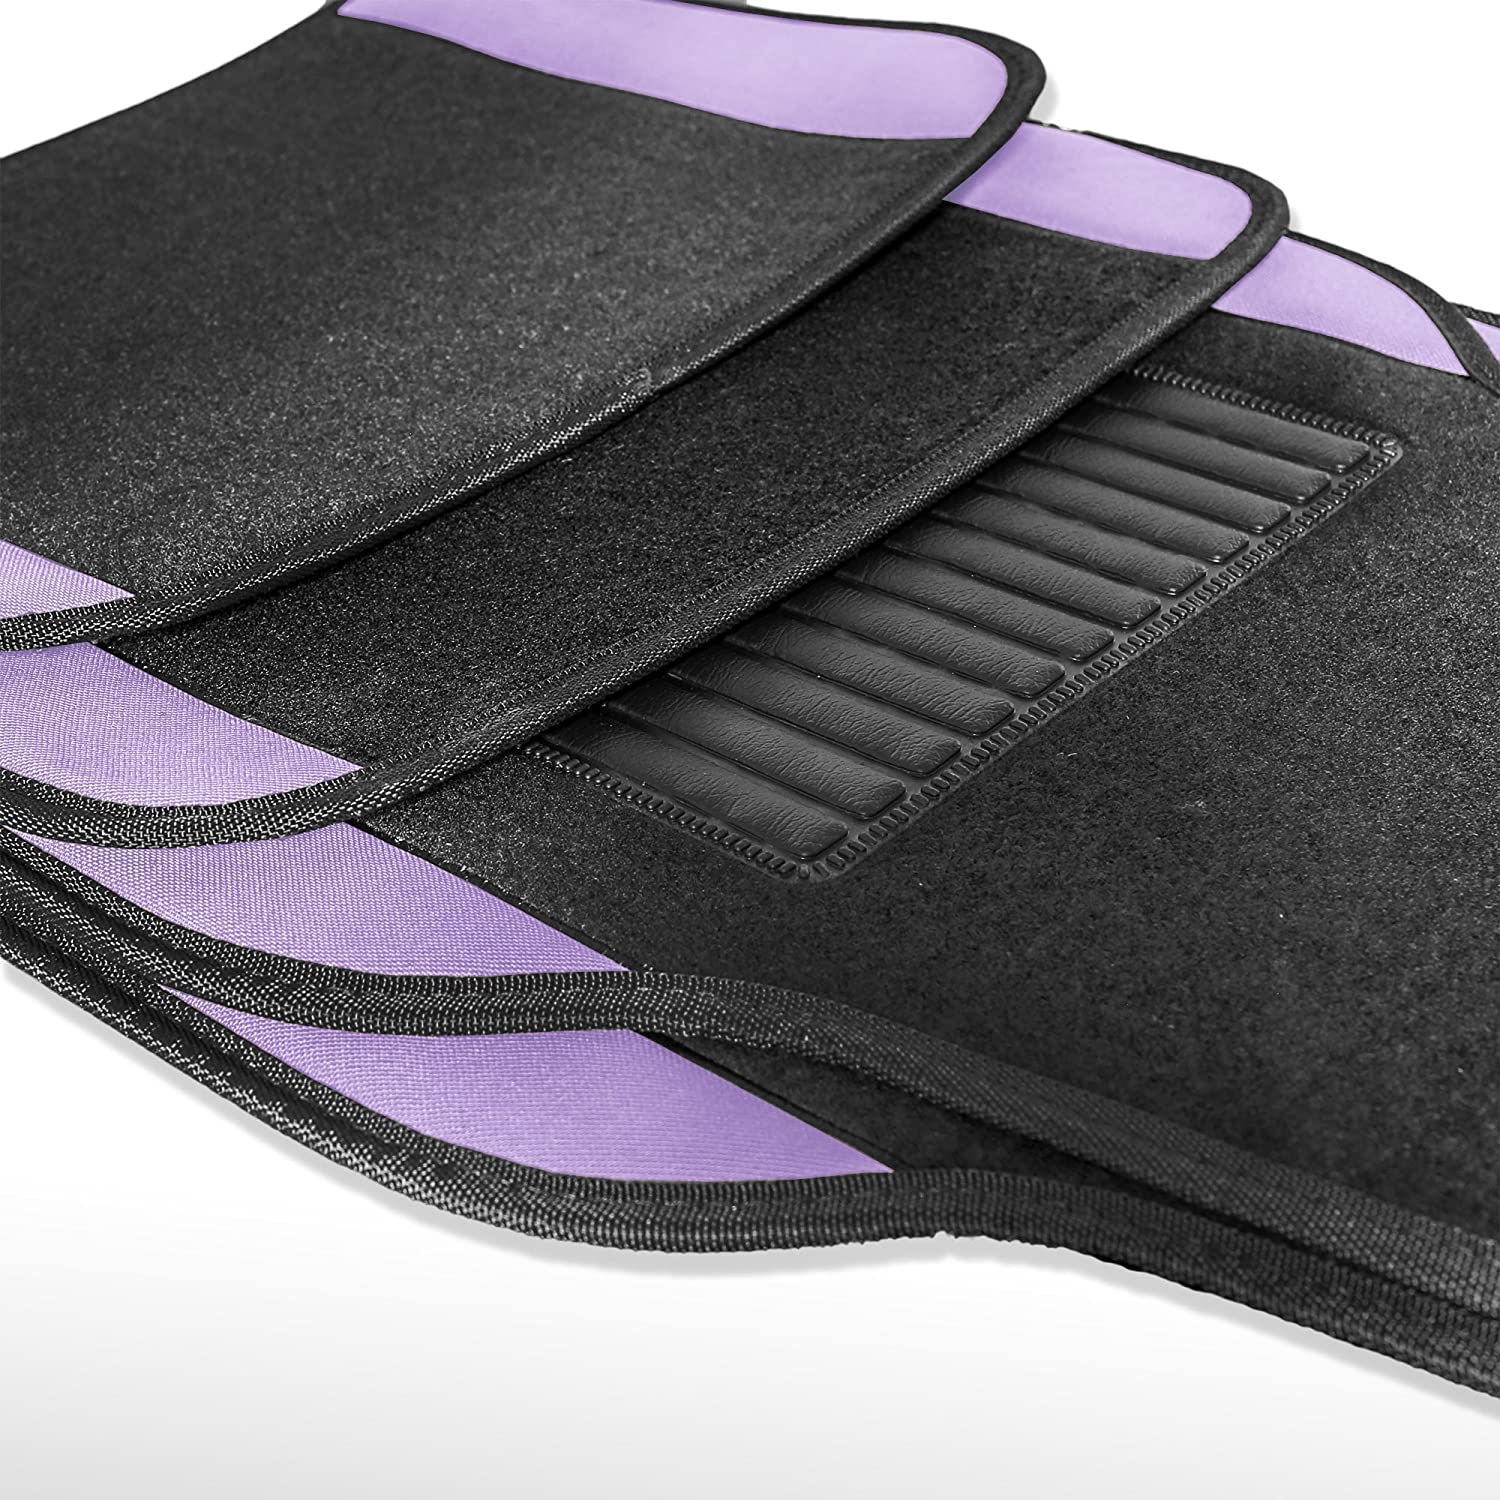 Sedan and SUV with Driver Heel Pad Green FH Group F14407GREEN Premium Full Set Carpet Floor Mat